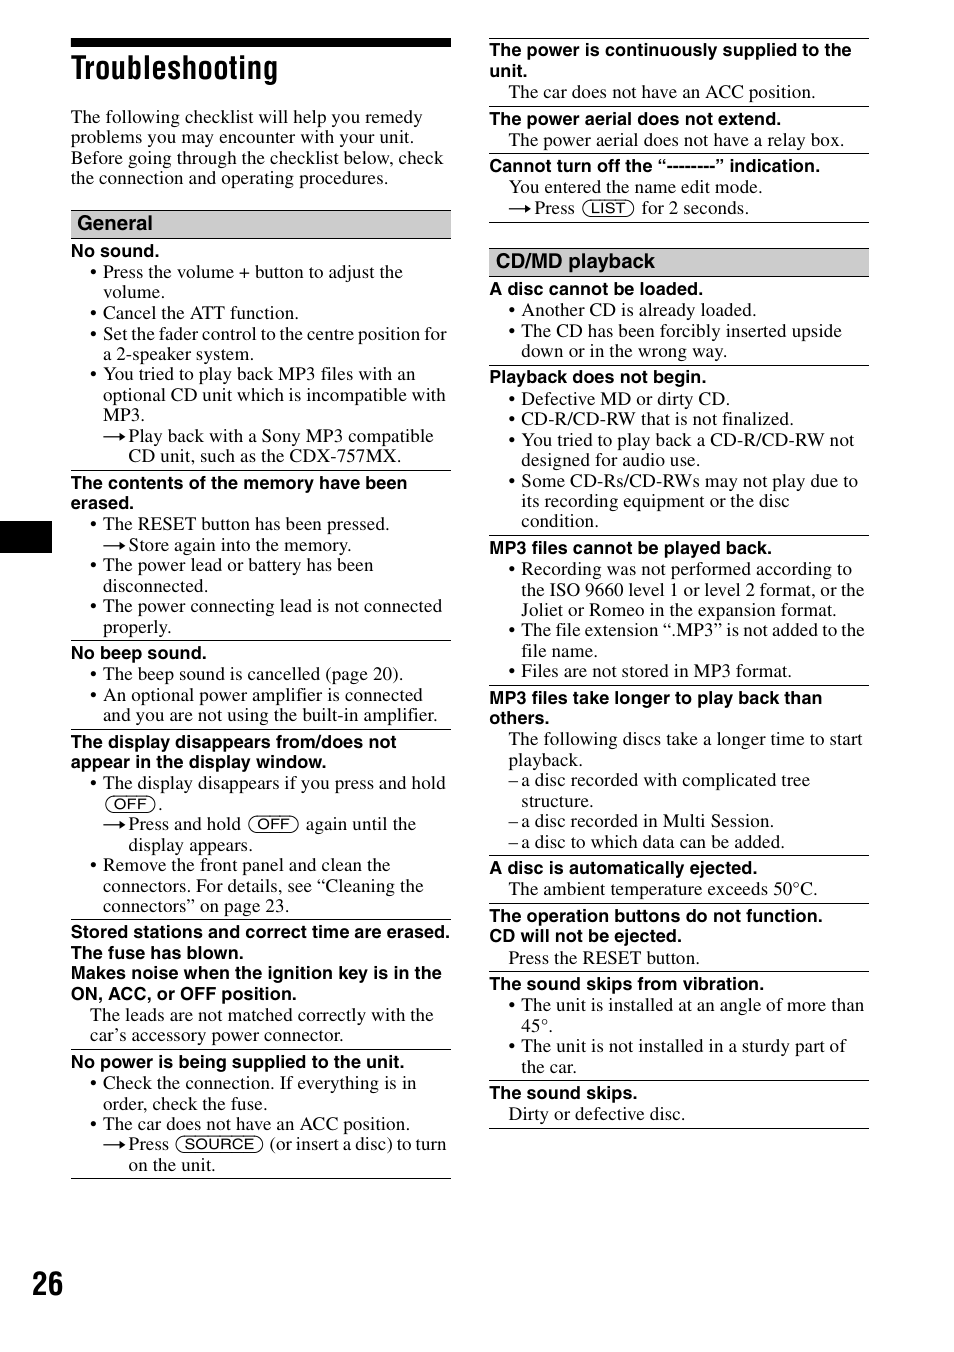 medium resolution of troubleshooting 26 troubleshooting sony cdx f5500 user manual page 26 84